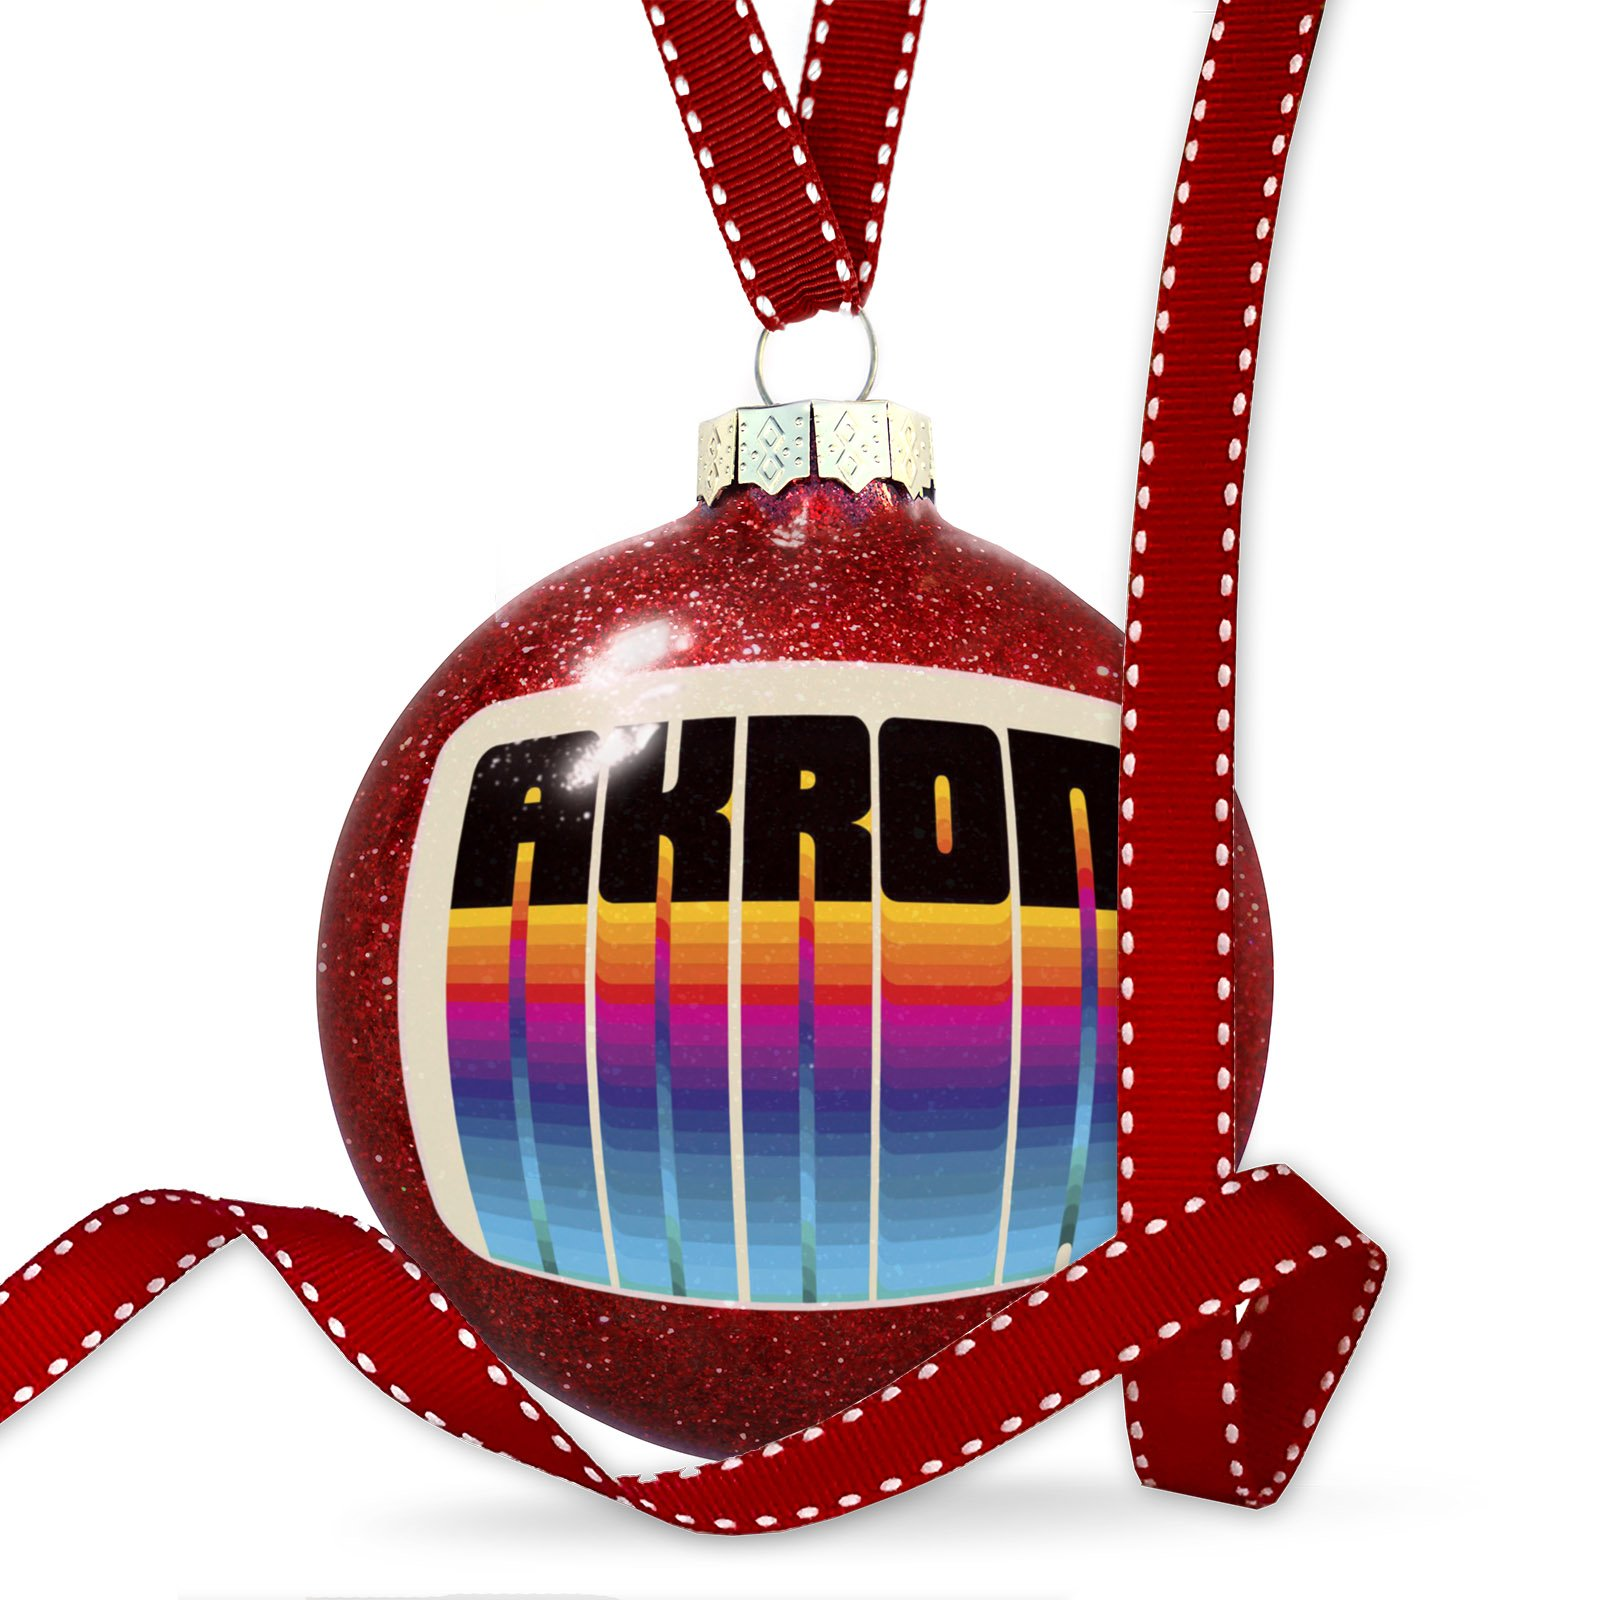 Christmas Decoration Retro Cites States Countries Akron Ornament by NEONBLOND (Image #1)